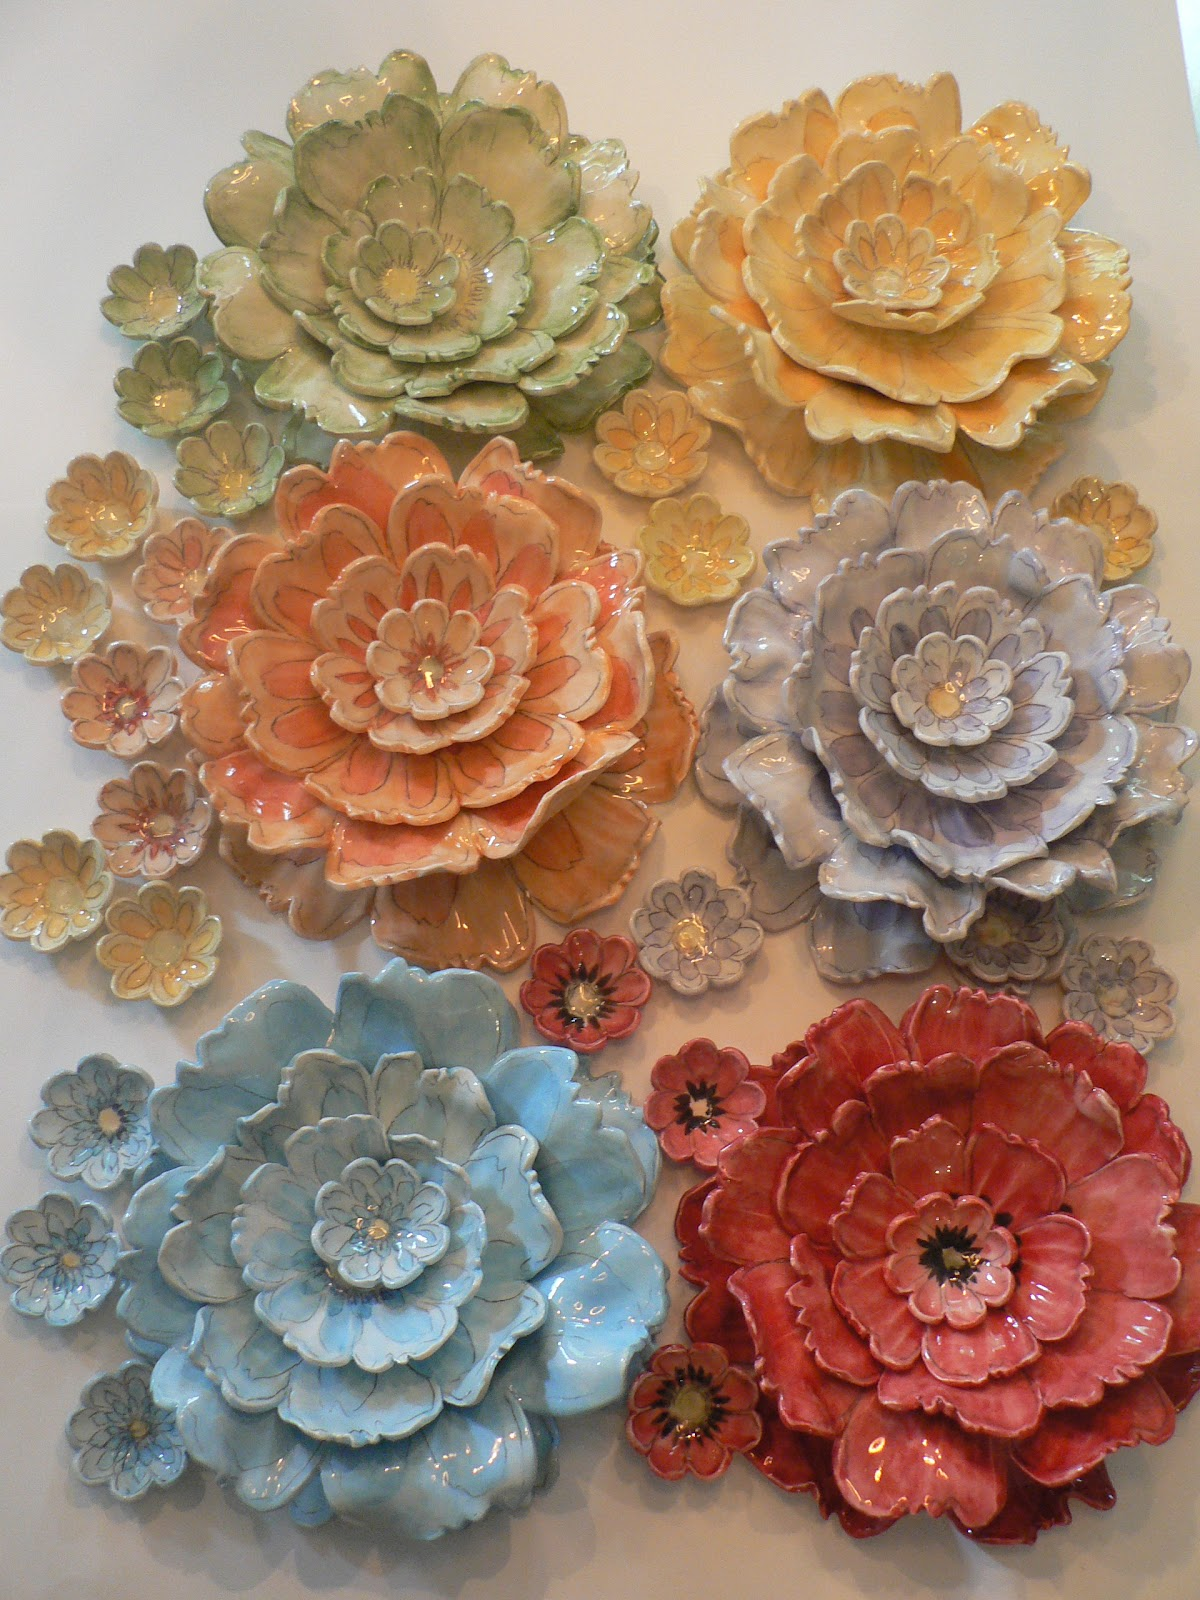 Unique Janet Francoeur My Art - My Travels - My Thoughts: Ceramic Flower  OT72